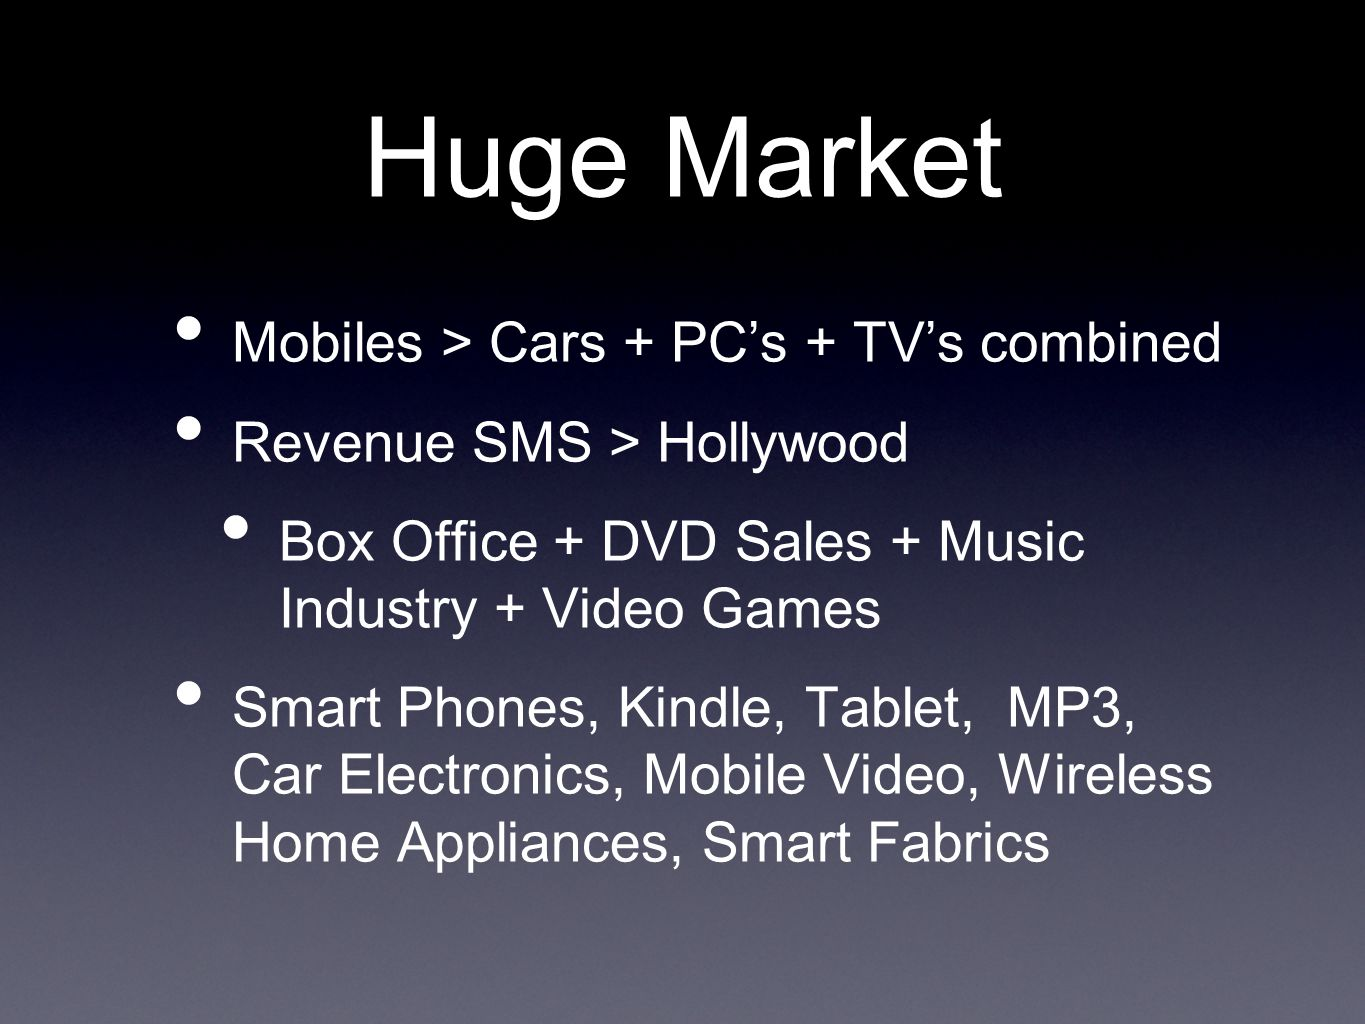 Huge Market Mobiles > Cars + PCs + TVs combined Revenue SMS > Hollywood Box Office + DVD Sales + Music Industry + Video Games Smart Phones, Kindle, Tablet, MP3, Car Electronics, Mobile Video, Wireless Home Appliances, Smart Fabrics